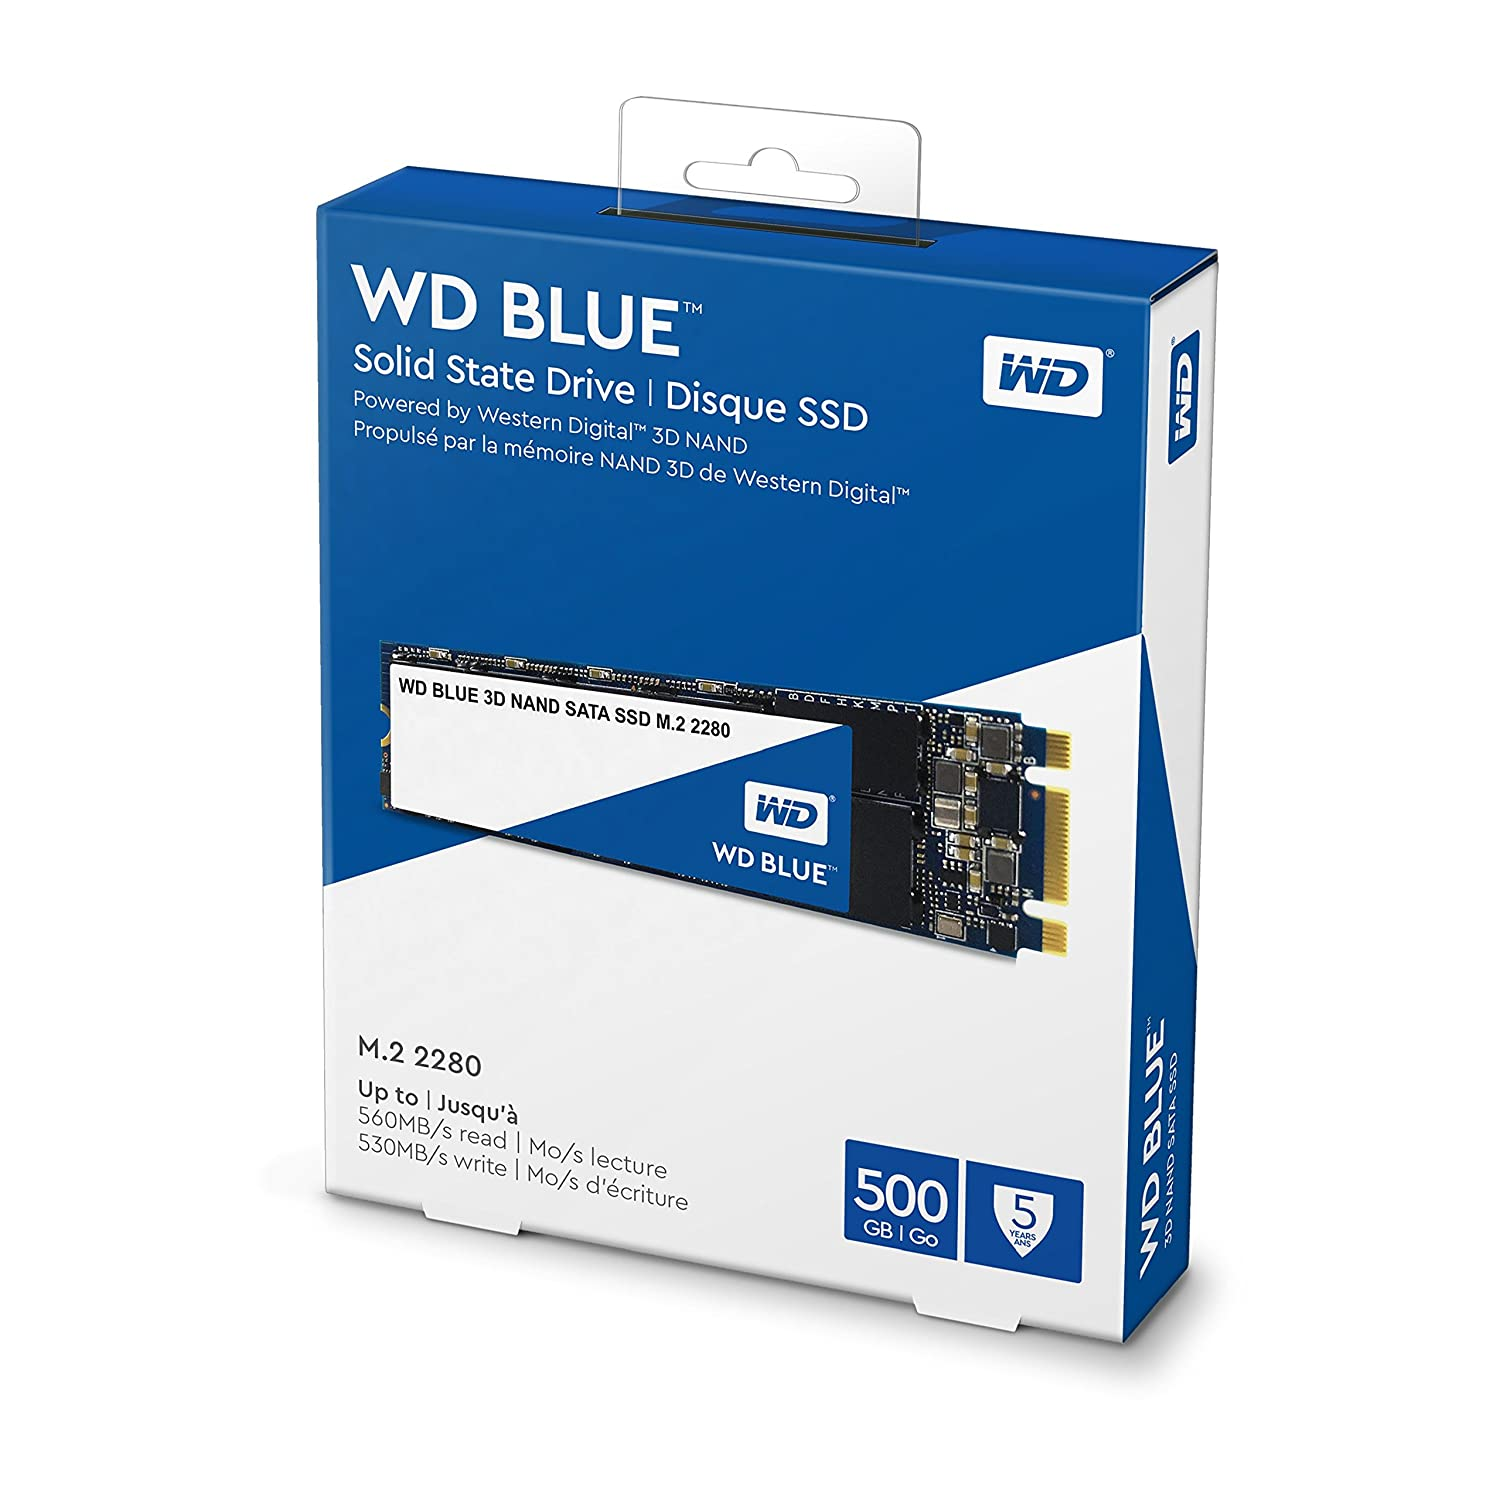 WD Blue 500GB M2 2280 Solid State Drive